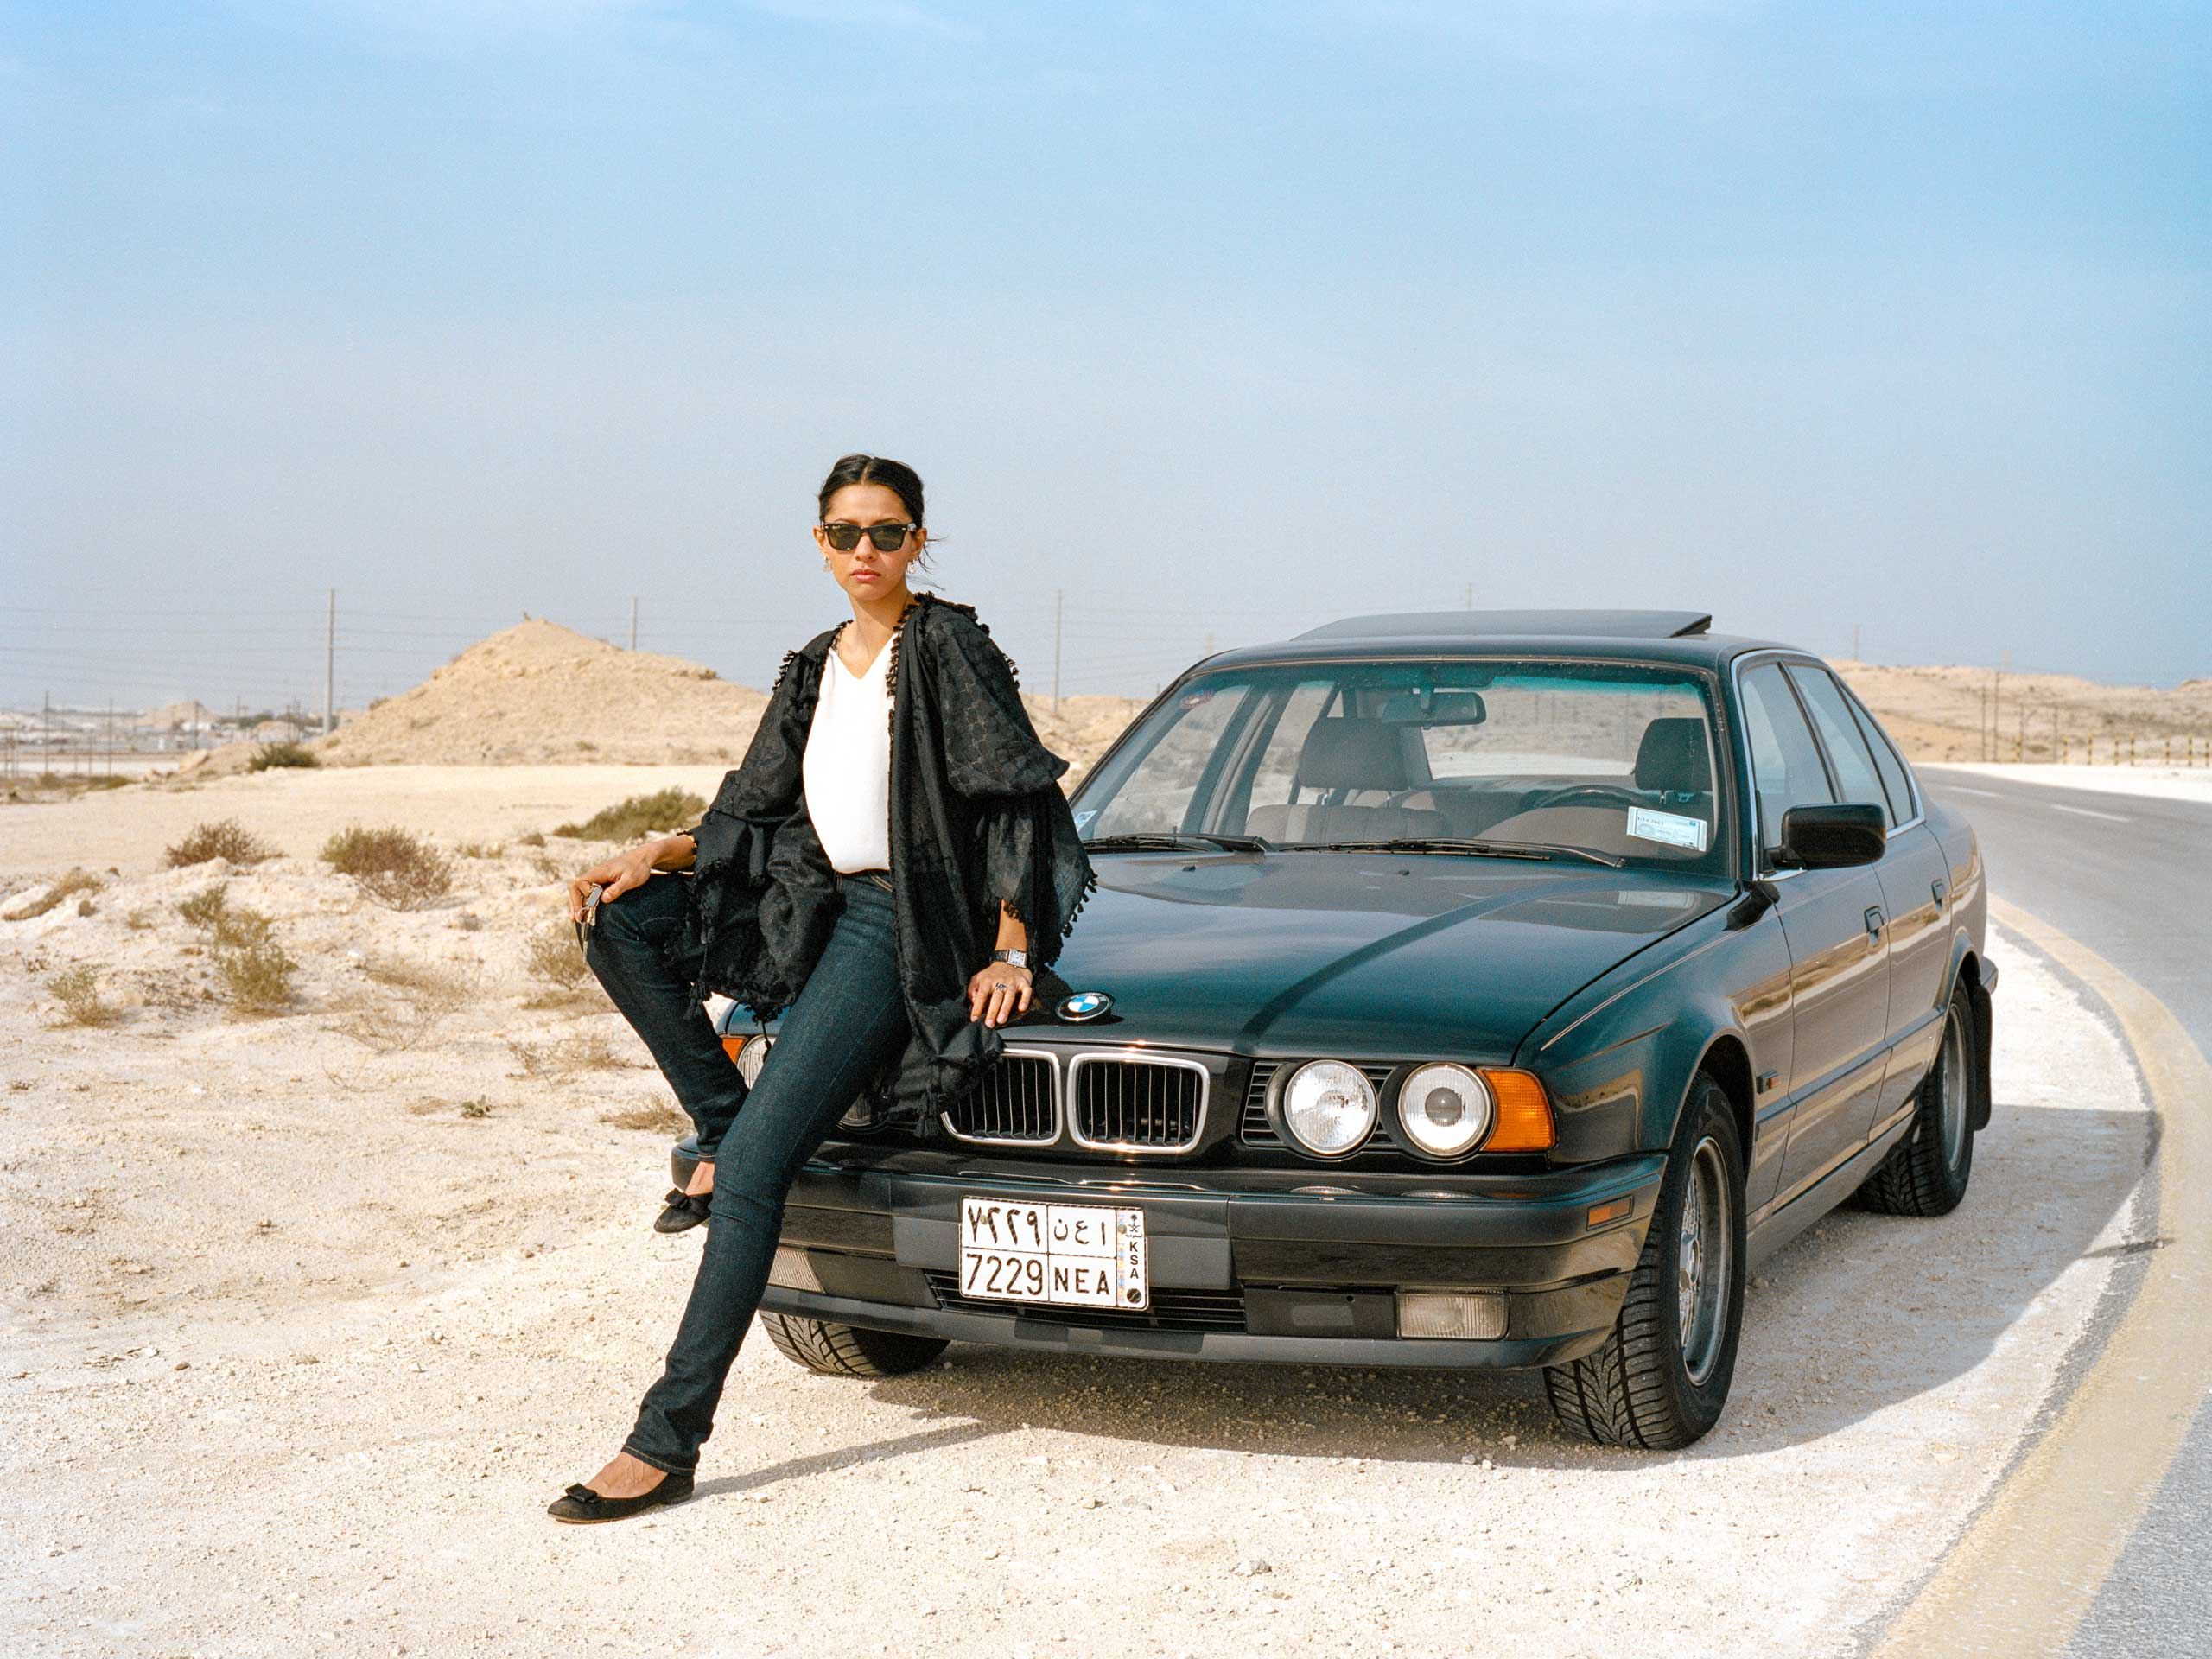 Sahrr sits on her car after driving out to the jebels on the Western side of Dhahran. In Arabic, jebel means mountain or hill. Many Aramcons use the term to refer to large rocky areas. While women are not allowed to drive in Saudi Arabia, they are allowed to drive within Aramco compounds, including Dhahran, the largest of them all.